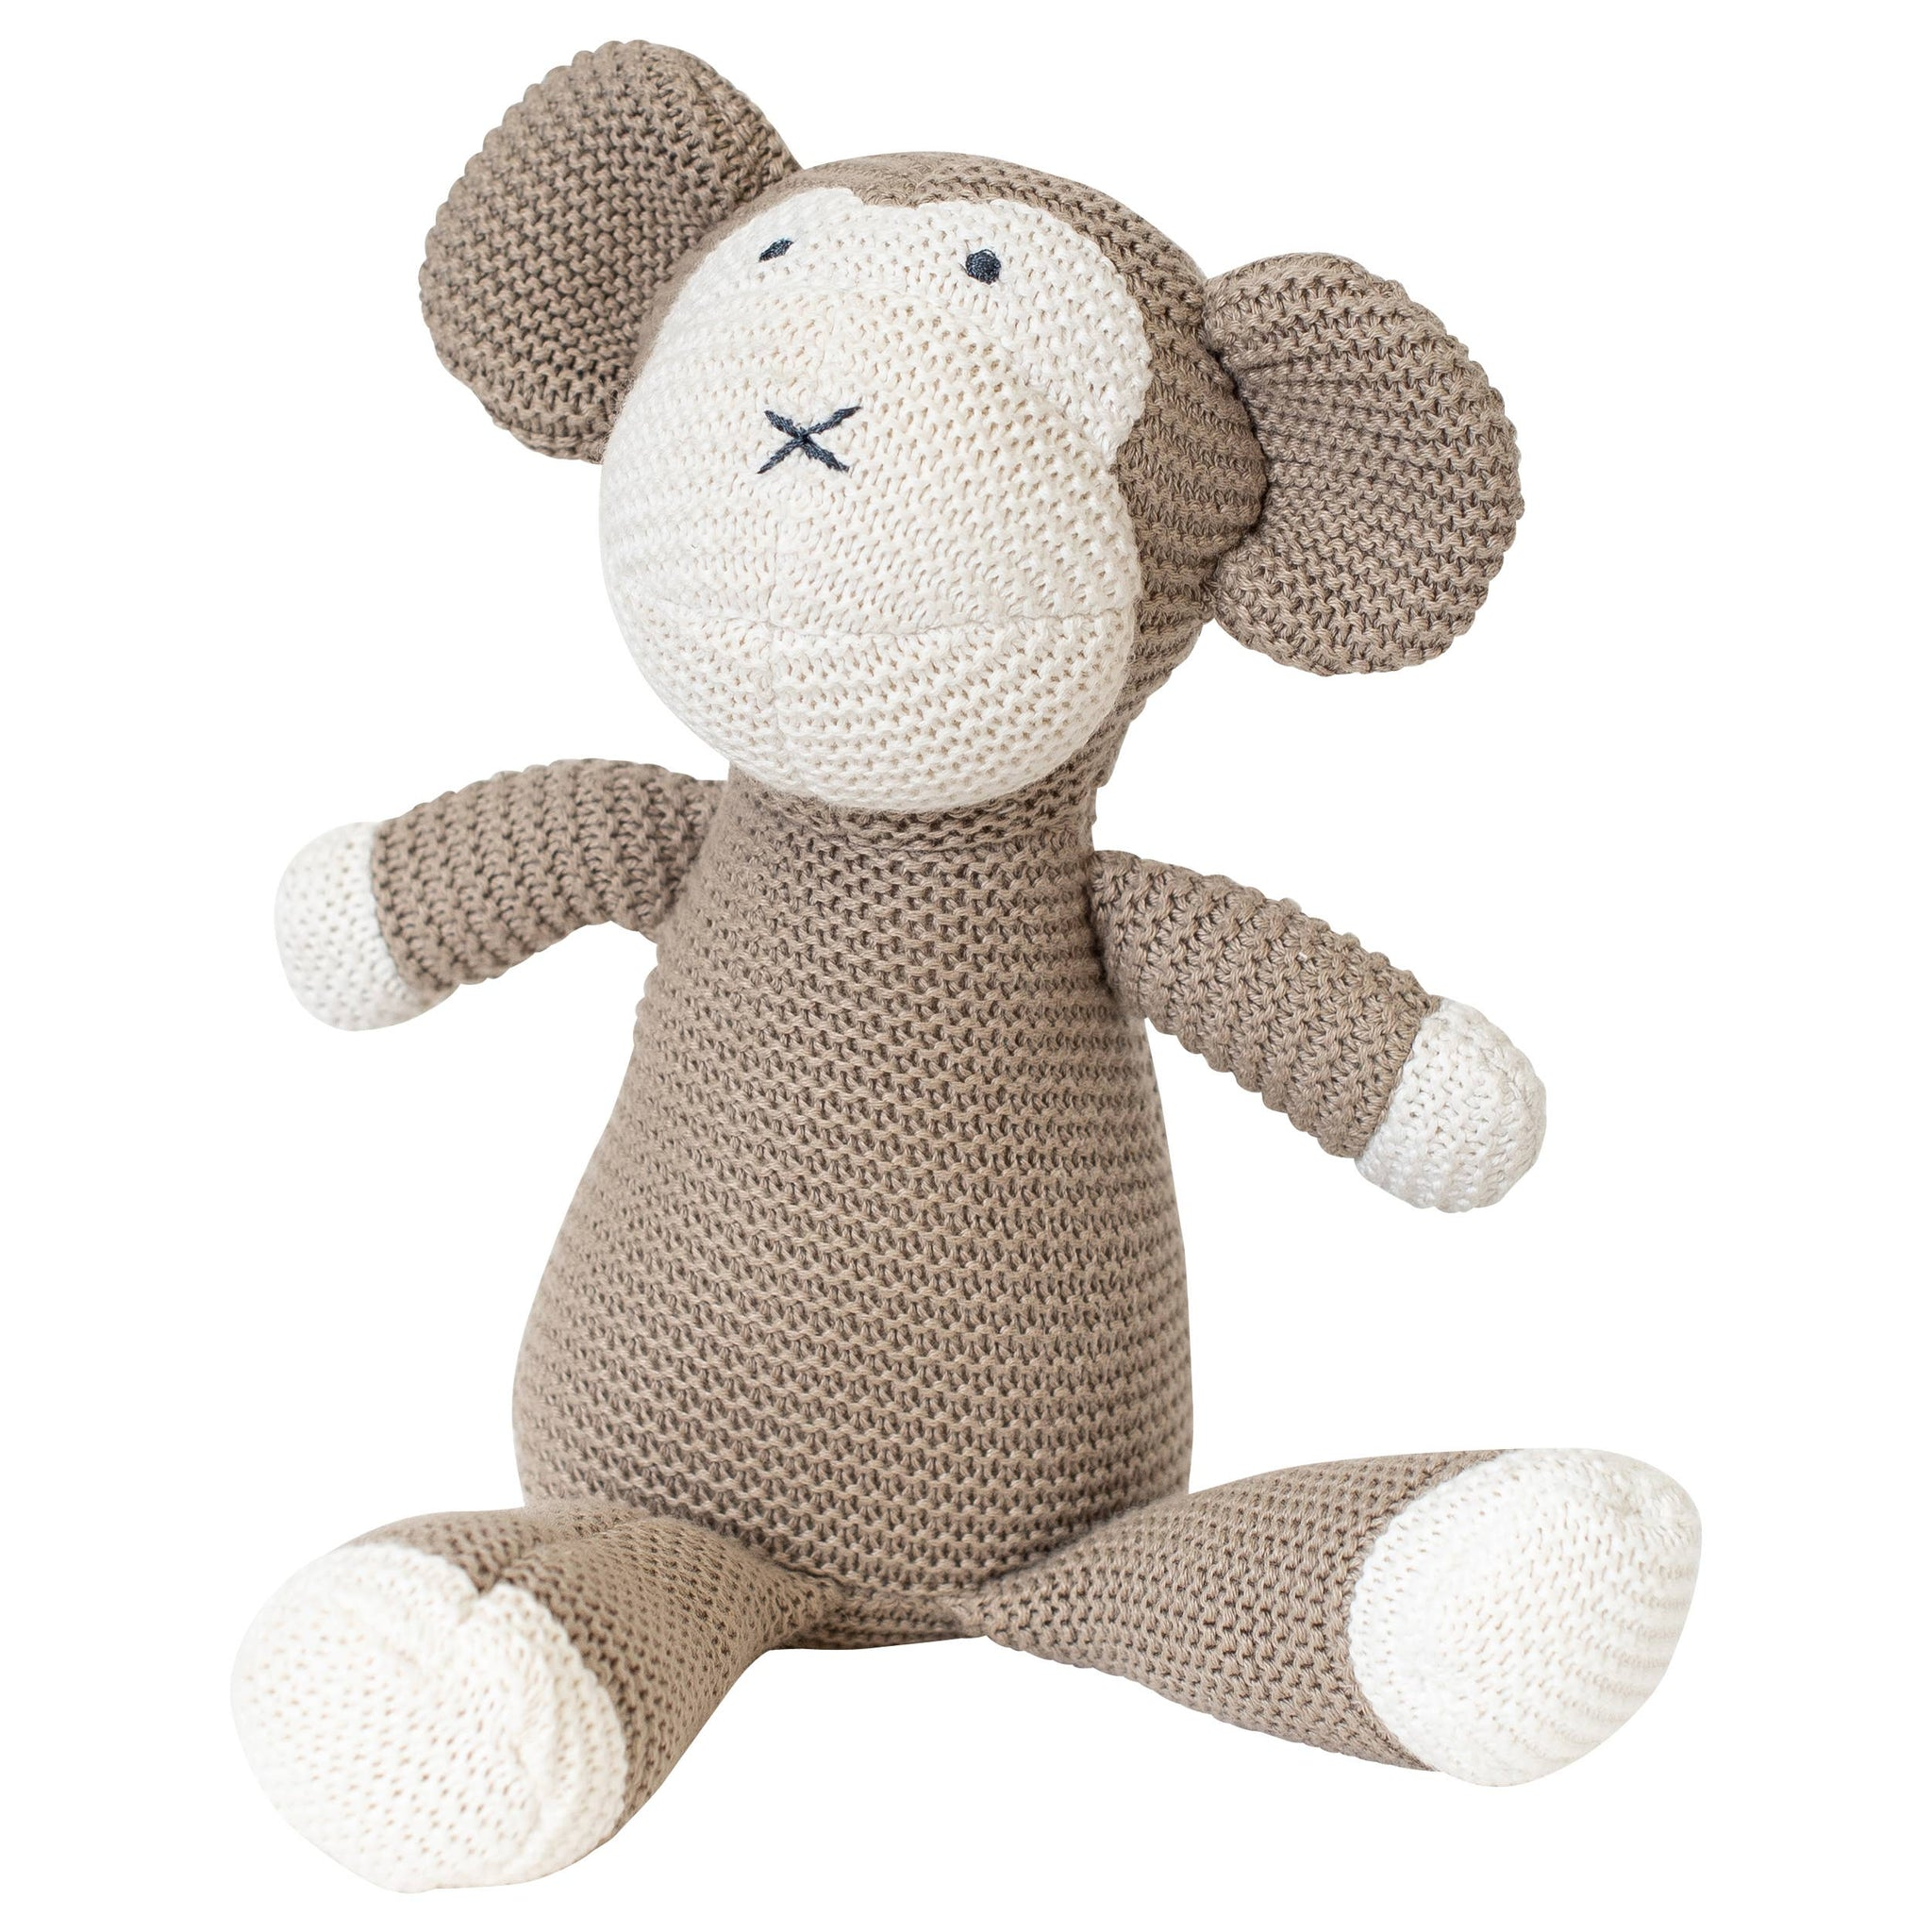 Zestt - Organic Cotton Classic Knit Monkey